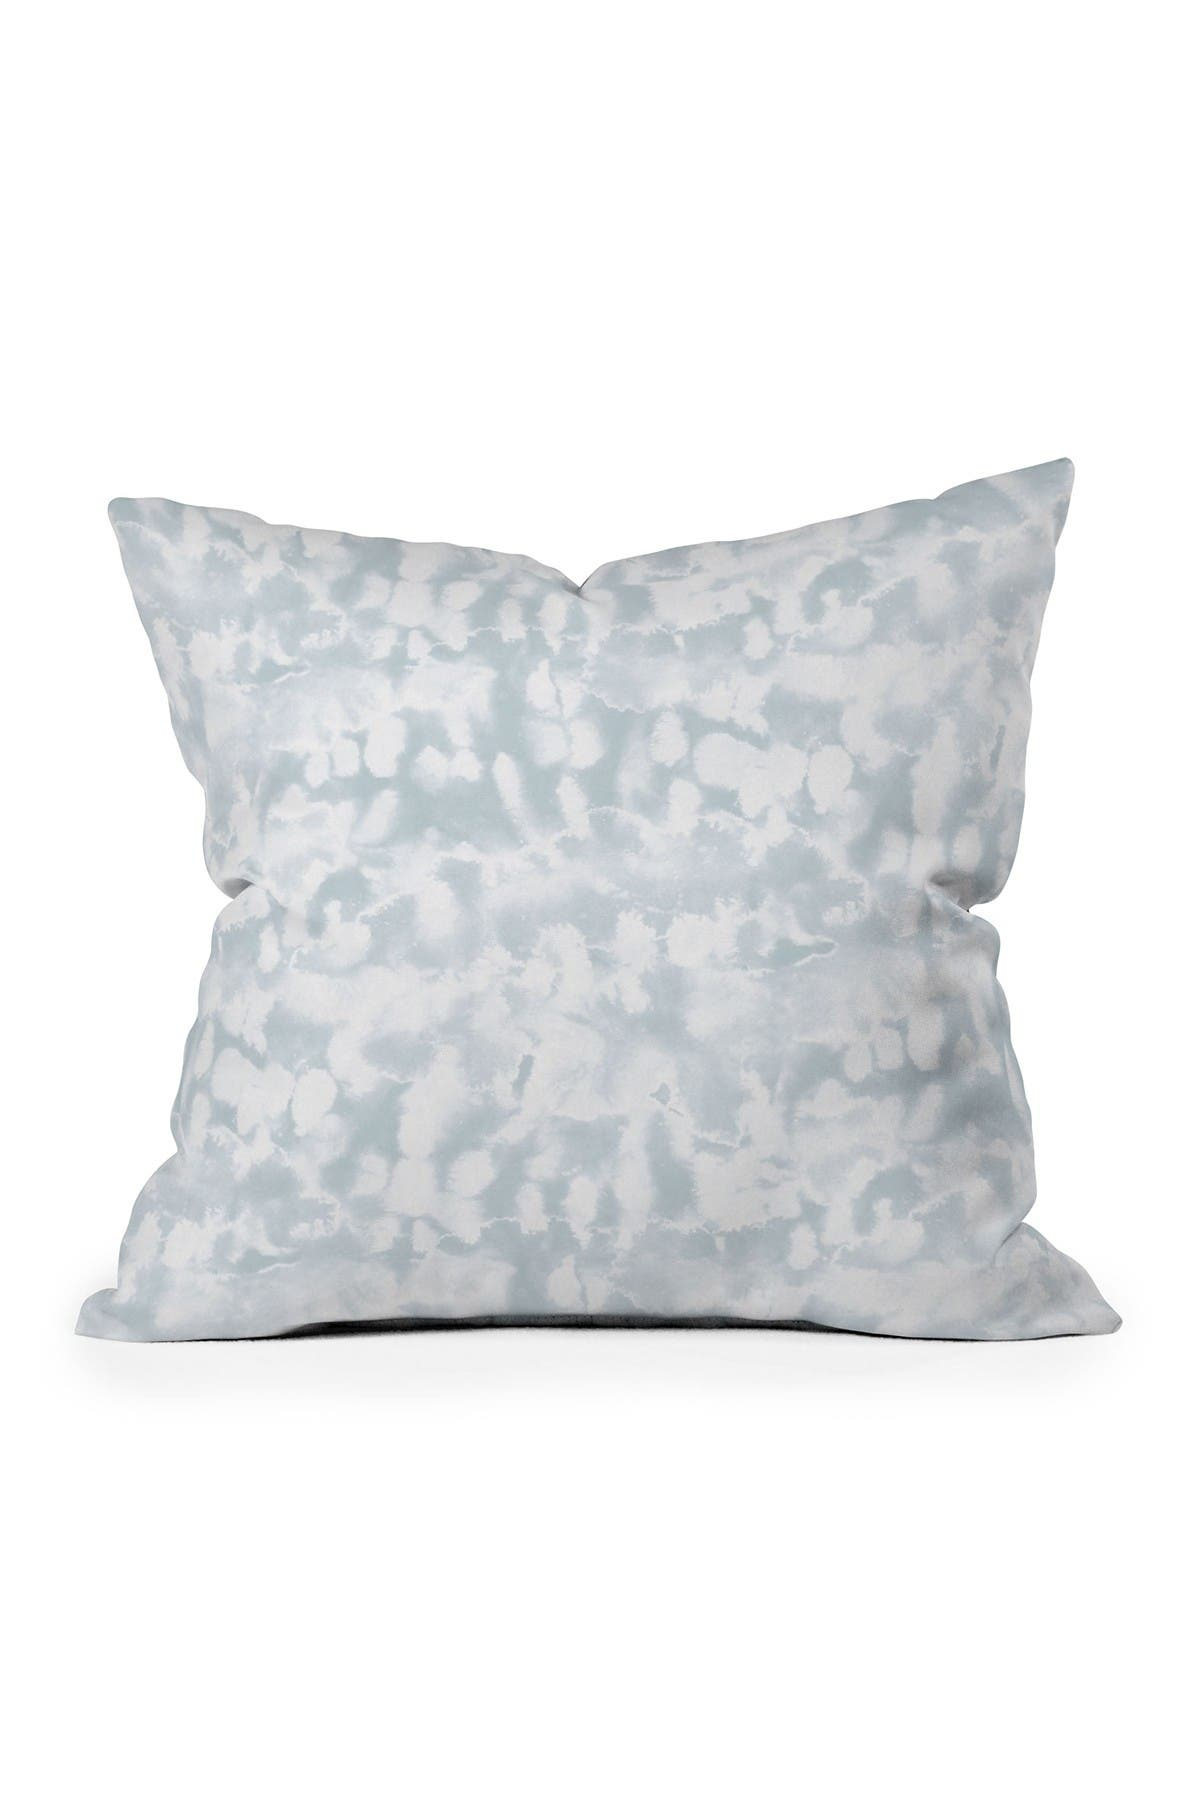 Image of Deny Designs Jacqueline Maldonado Inverse Ice Dye Cloud Square Throw Pillow